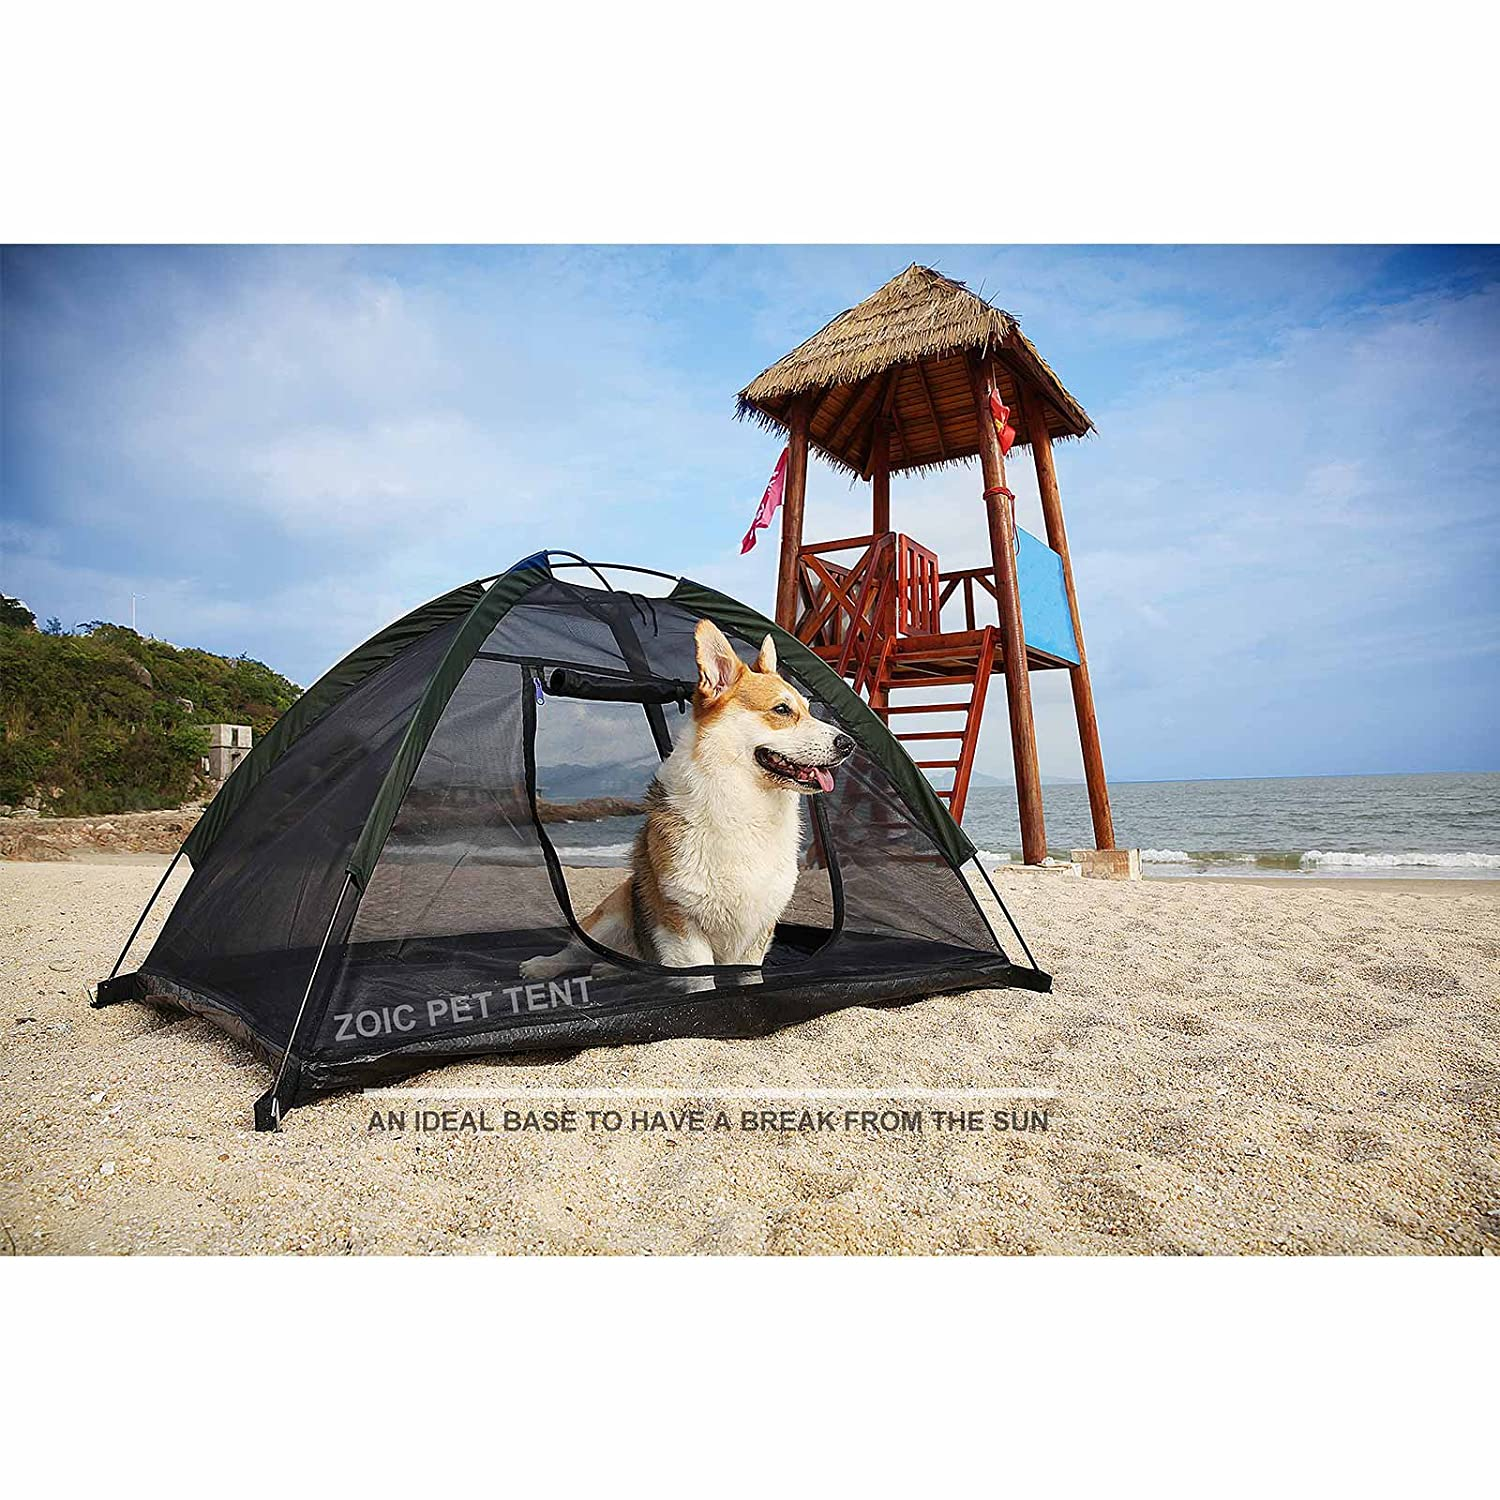 Black ZOIC Dog Cat Camping Tent Outdoor Travel Safety Pet Shelter Toy Storage (Black)